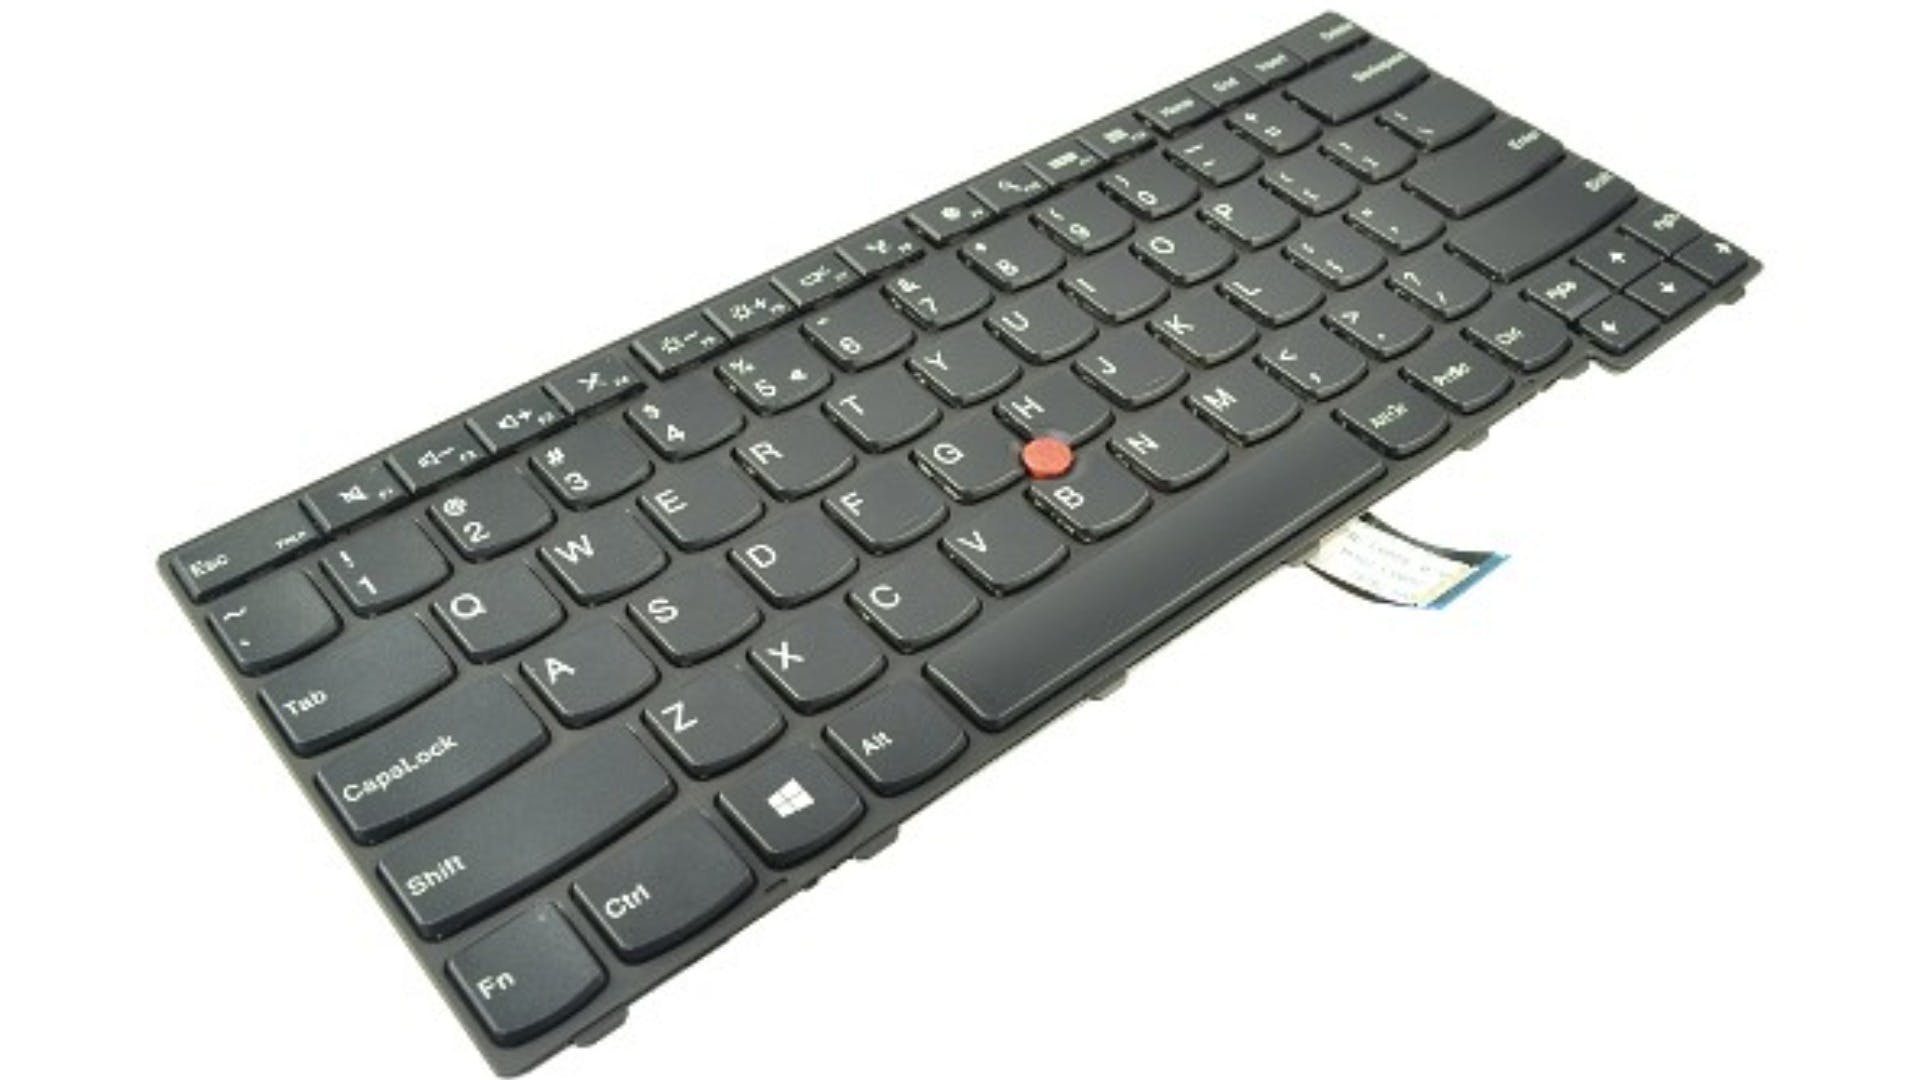 0ed336e7c41 Lenovo Thinkpad US Keyboard | Ireland